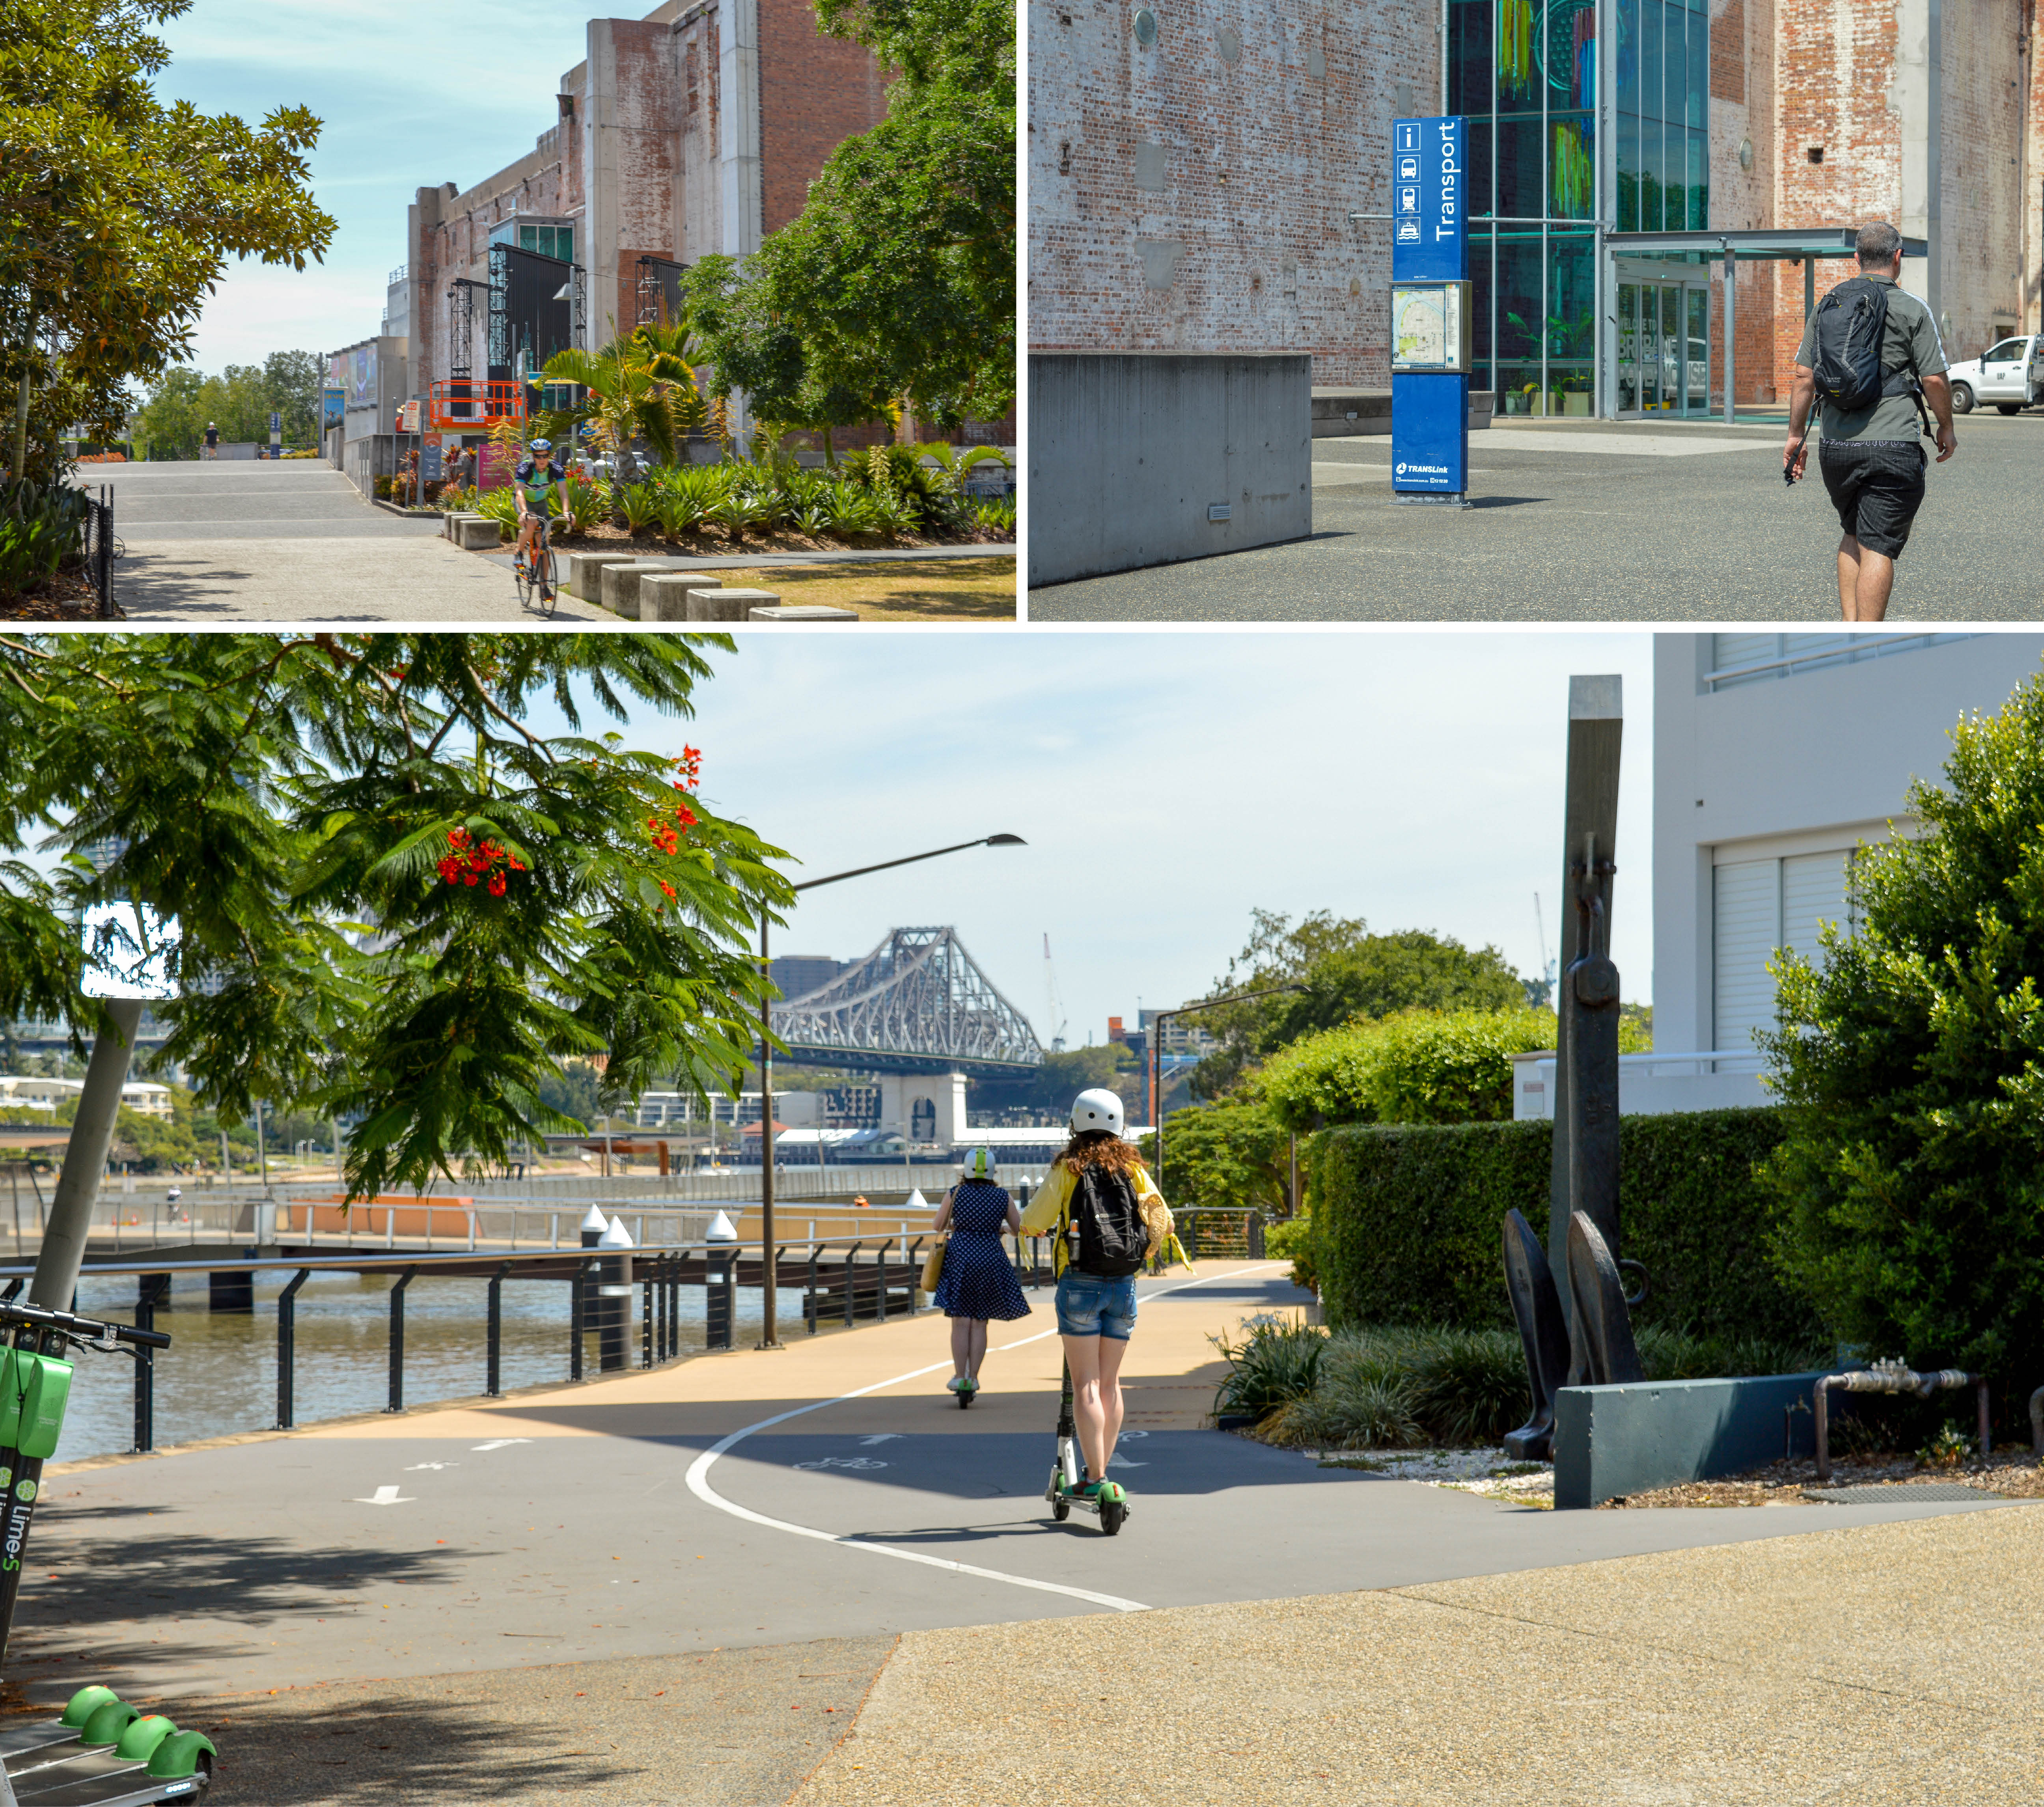 Commuters walking, riding bikes and using lime scooters near the Brisbane Powerhouse and Riverwalk